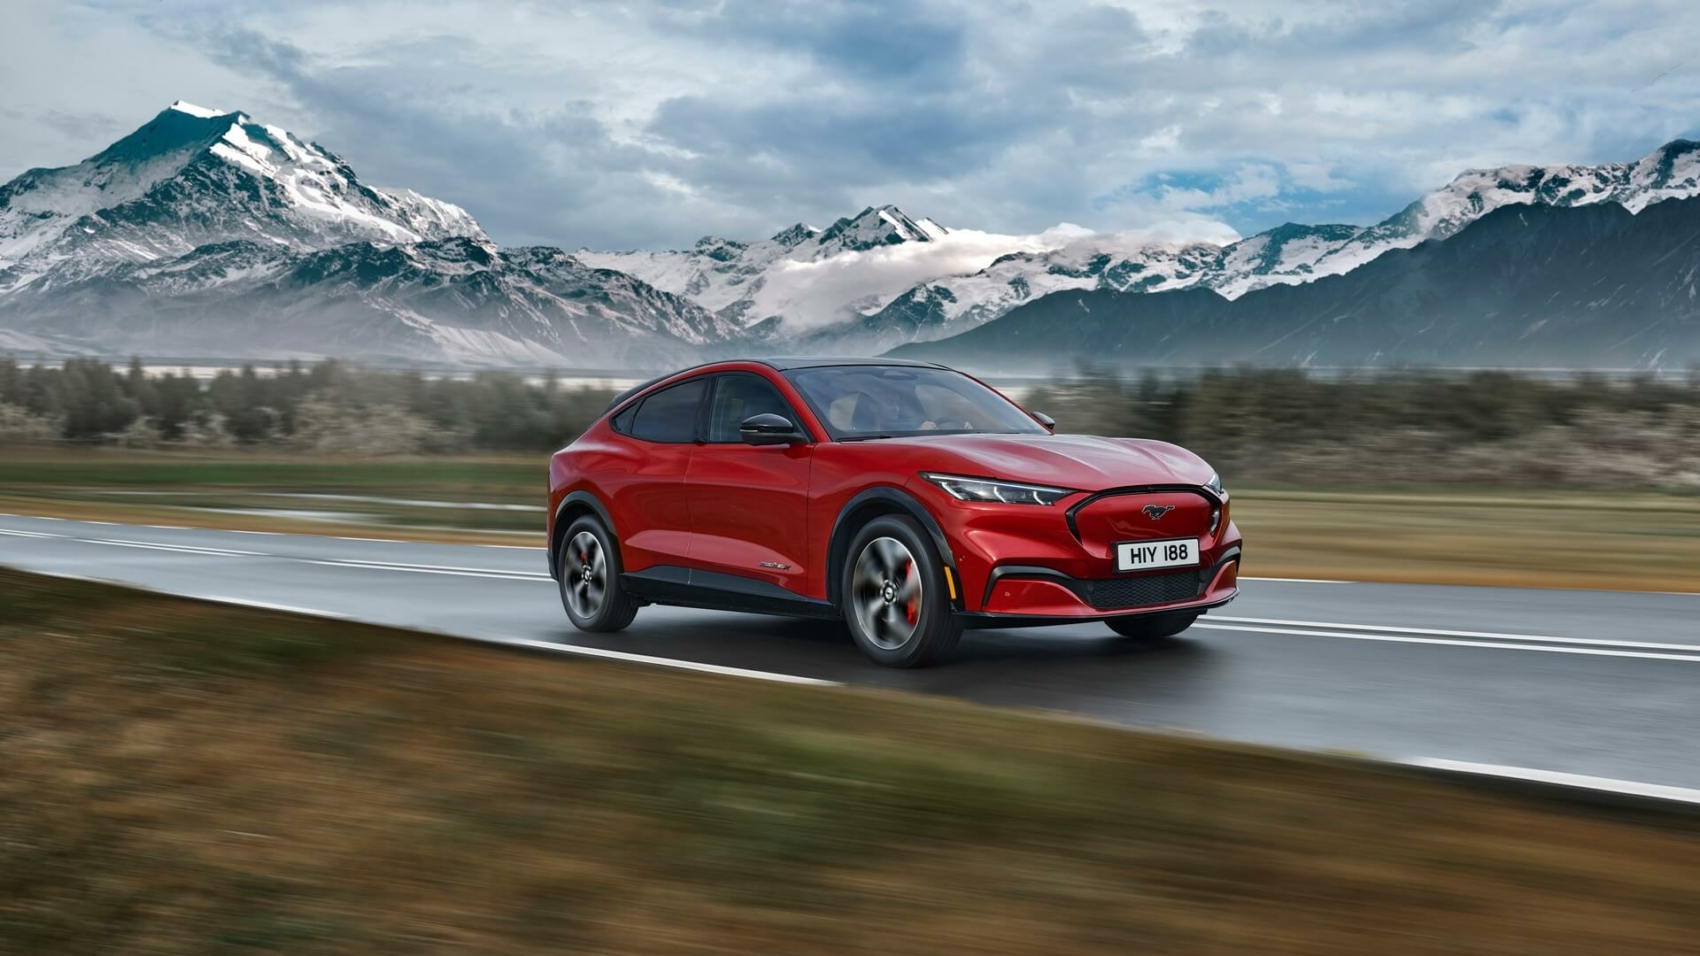 Ford Mustang Mach E in Europe